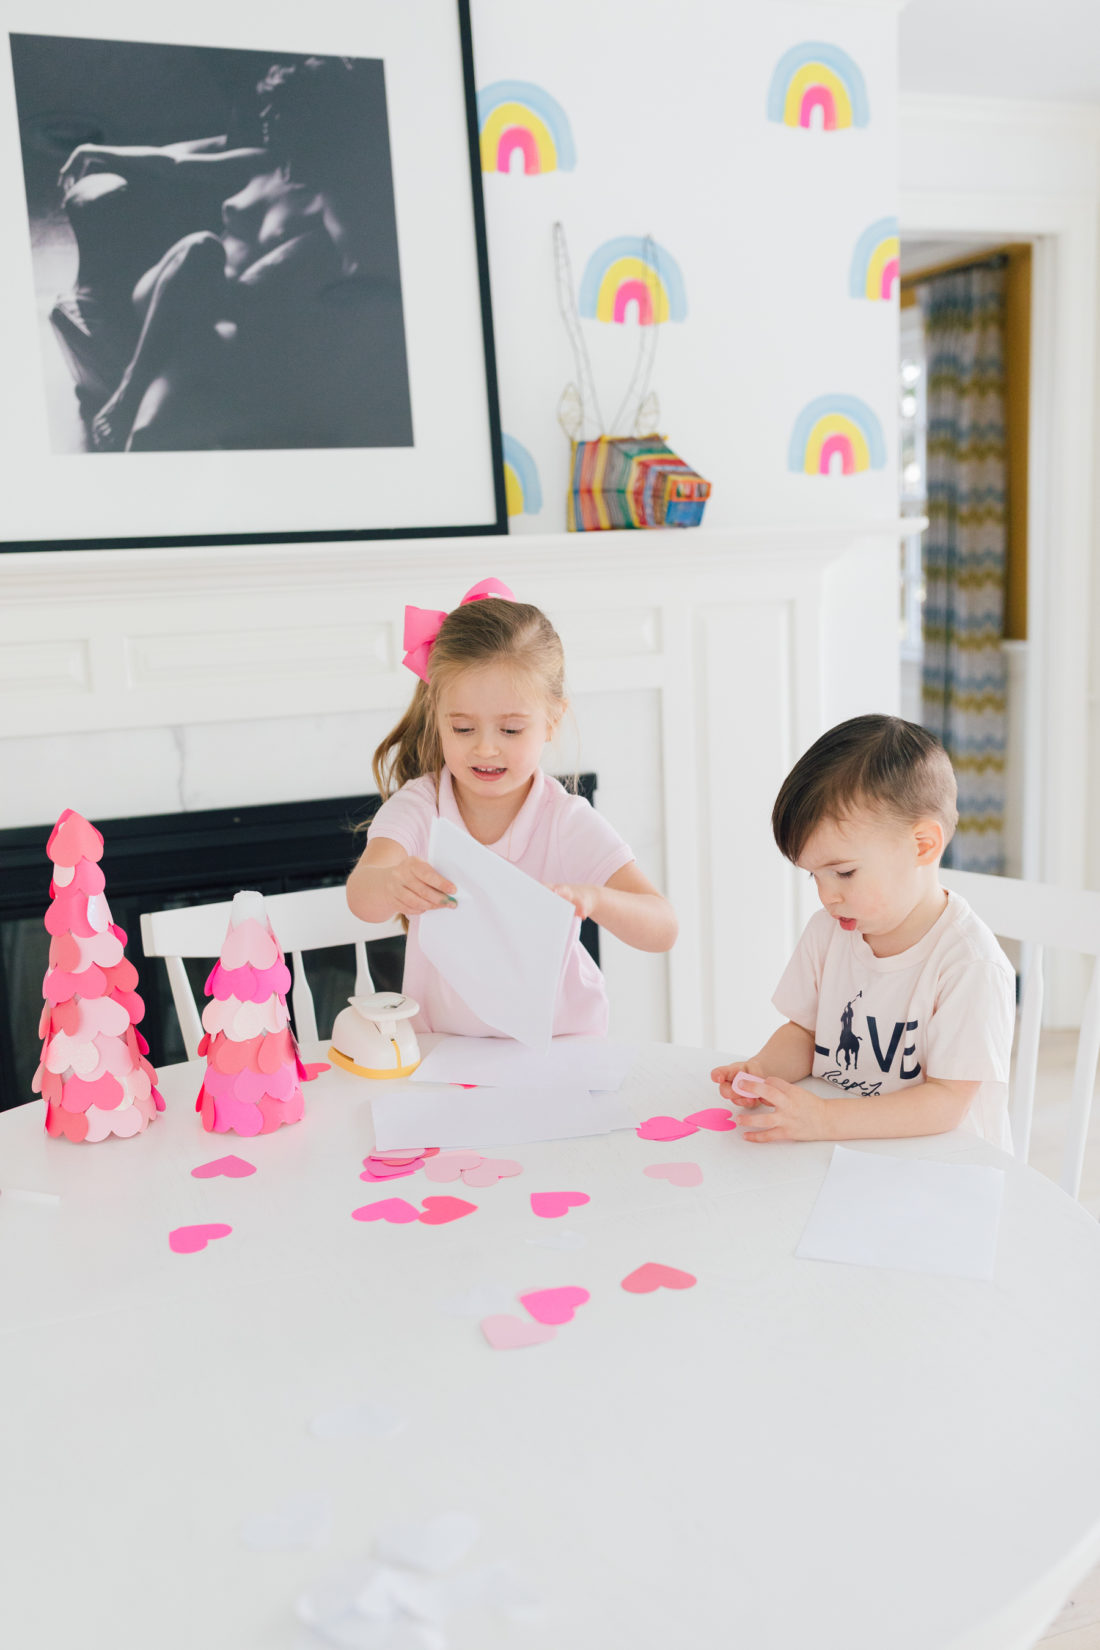 Marlowe and Major martino use a heart hole pumch to create the materials for a valentine's day craft